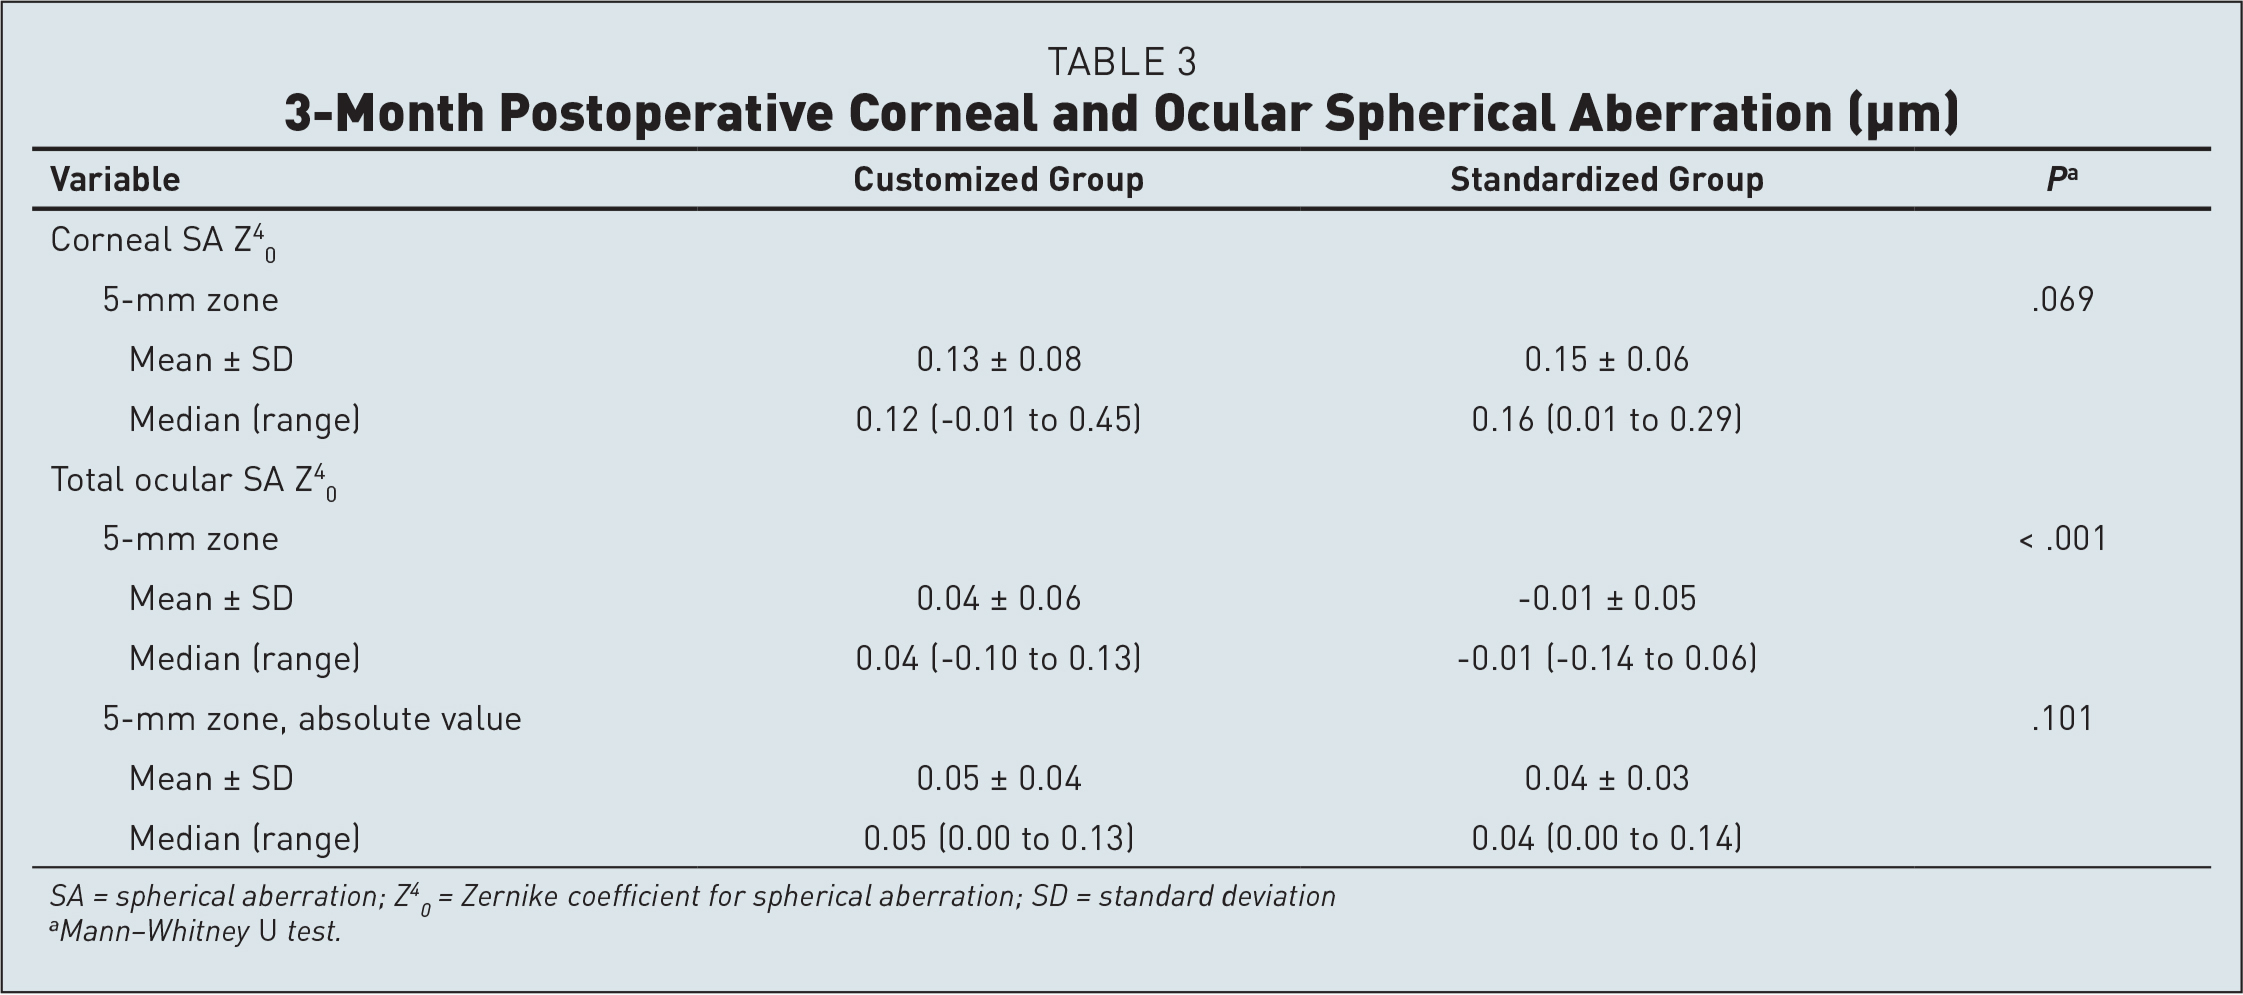 3-Month Postoperative Corneal and Ocular Spherical Aberration (µm)